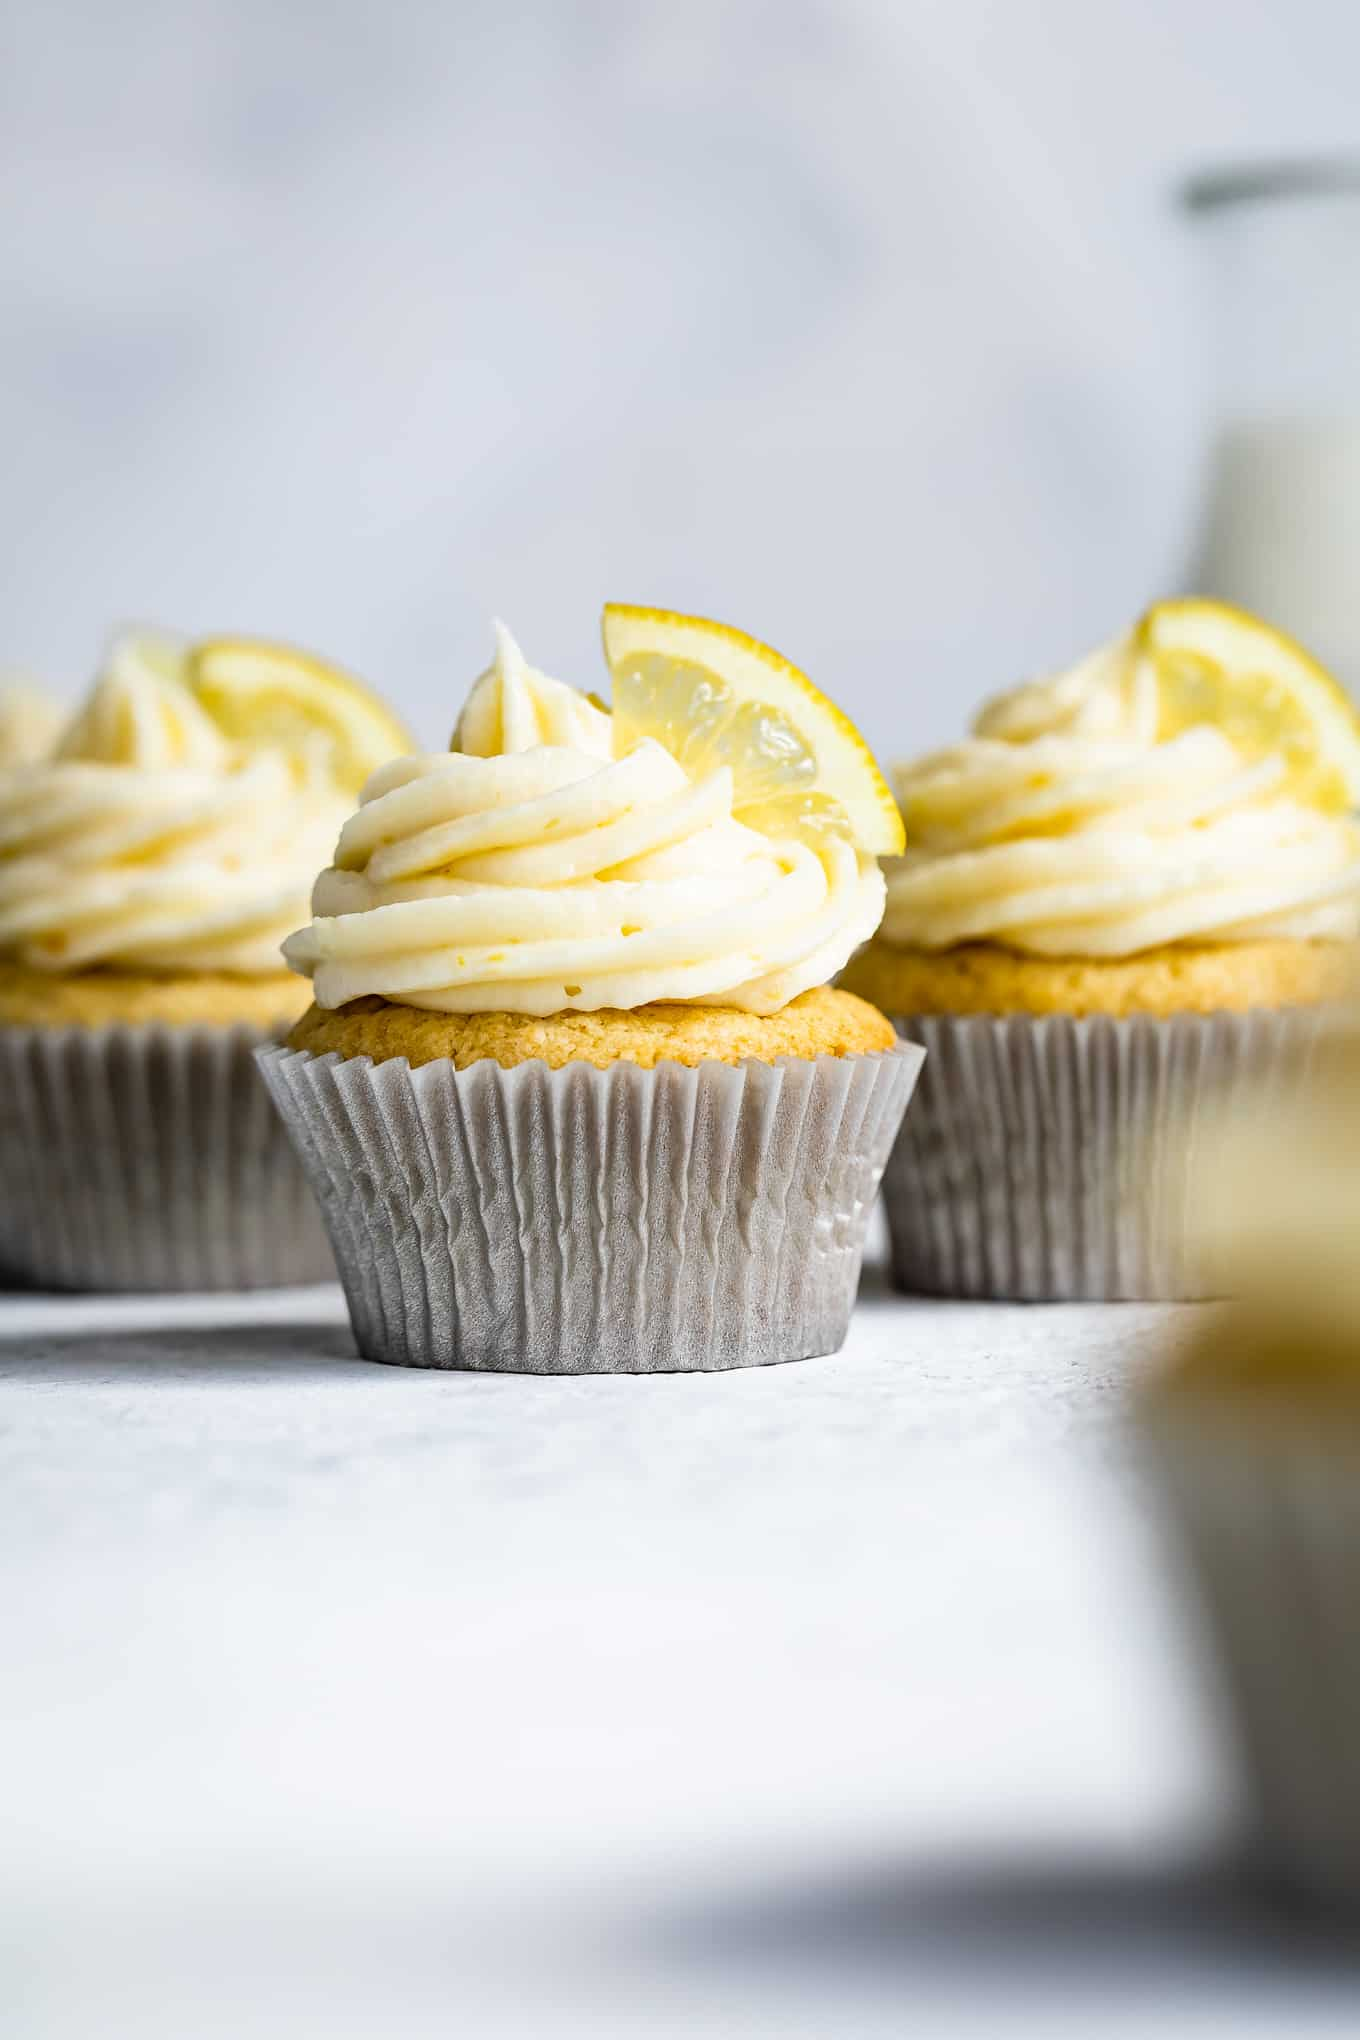 Gluten-Free Lemon Cake with Cream Cheese Frosting